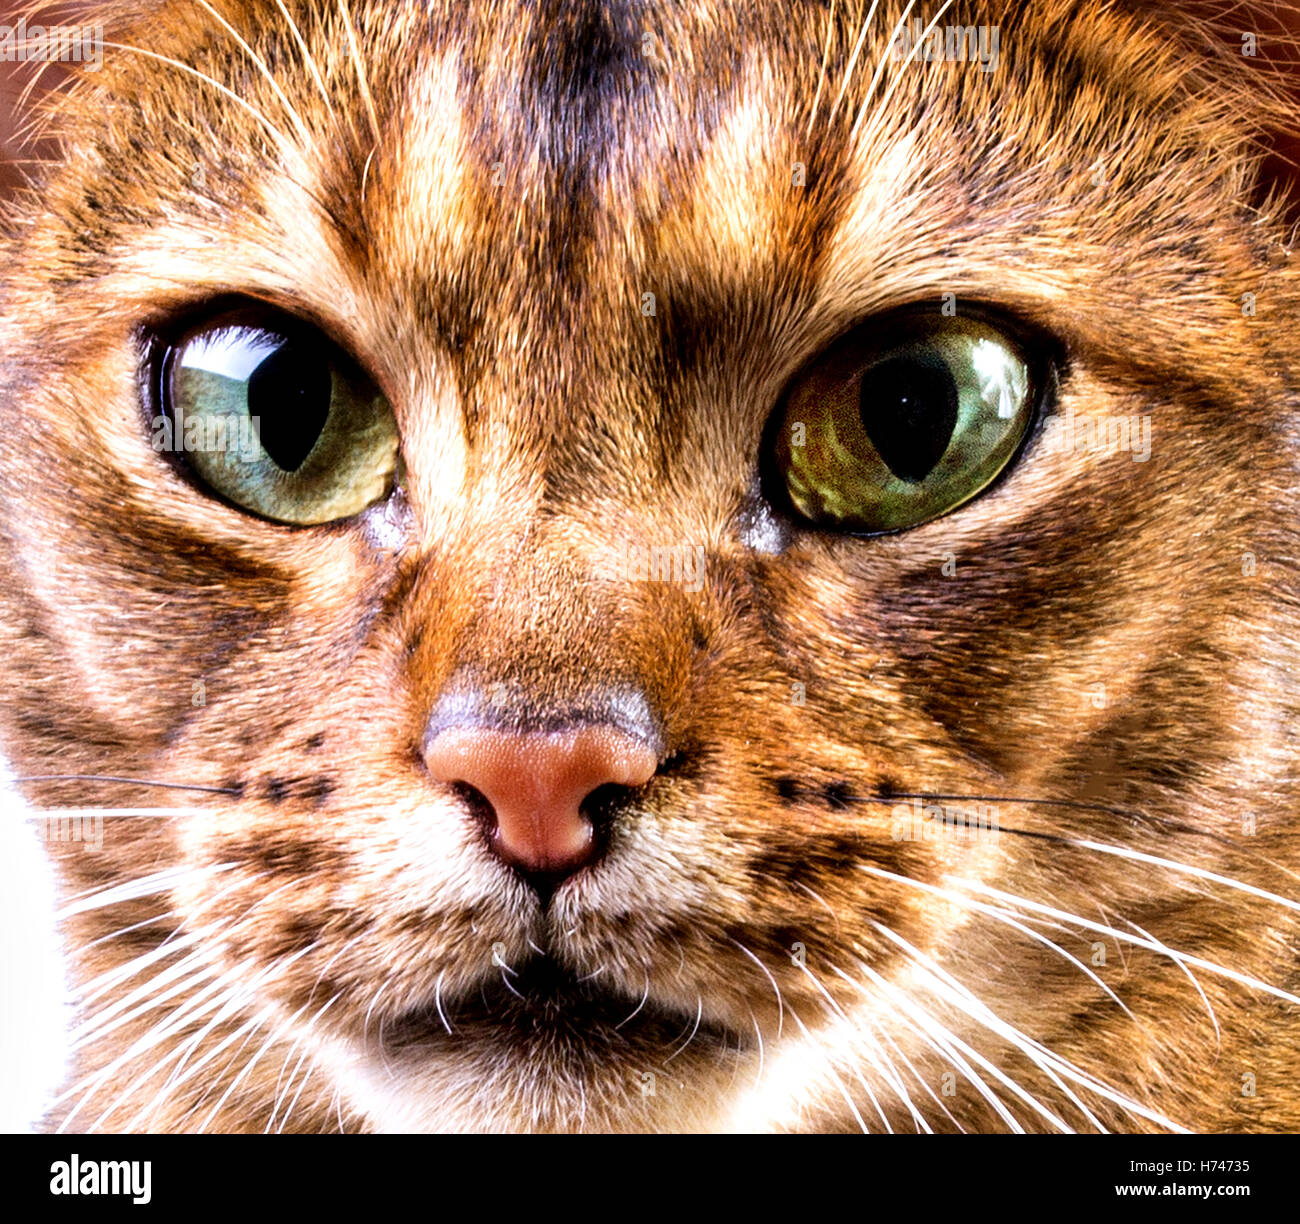 Close-up of abyssinian cat's face on white background - Stock Image